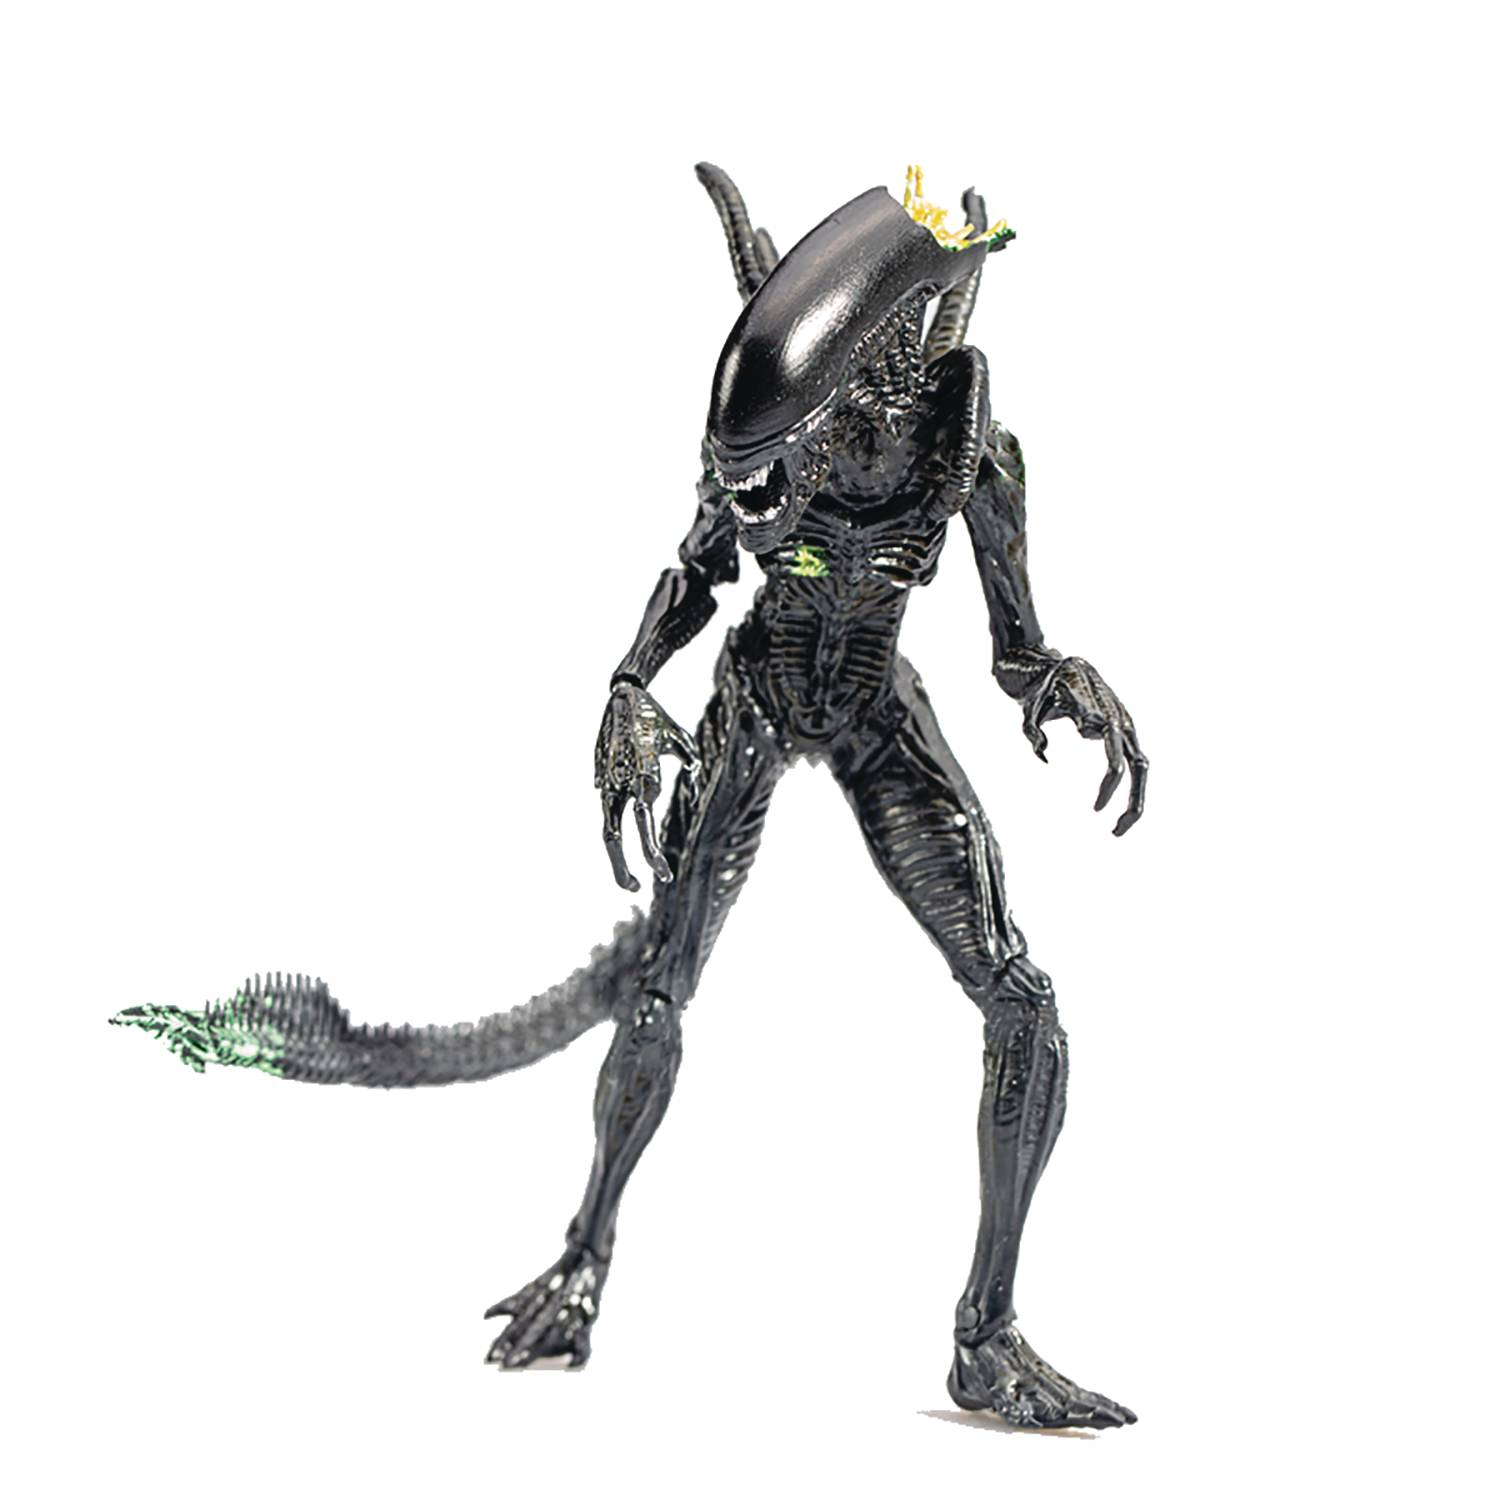 AVP BLOWOUT ALIEN WARRIOR PX 1/18 SCALE FIGURE (OCT208830) (